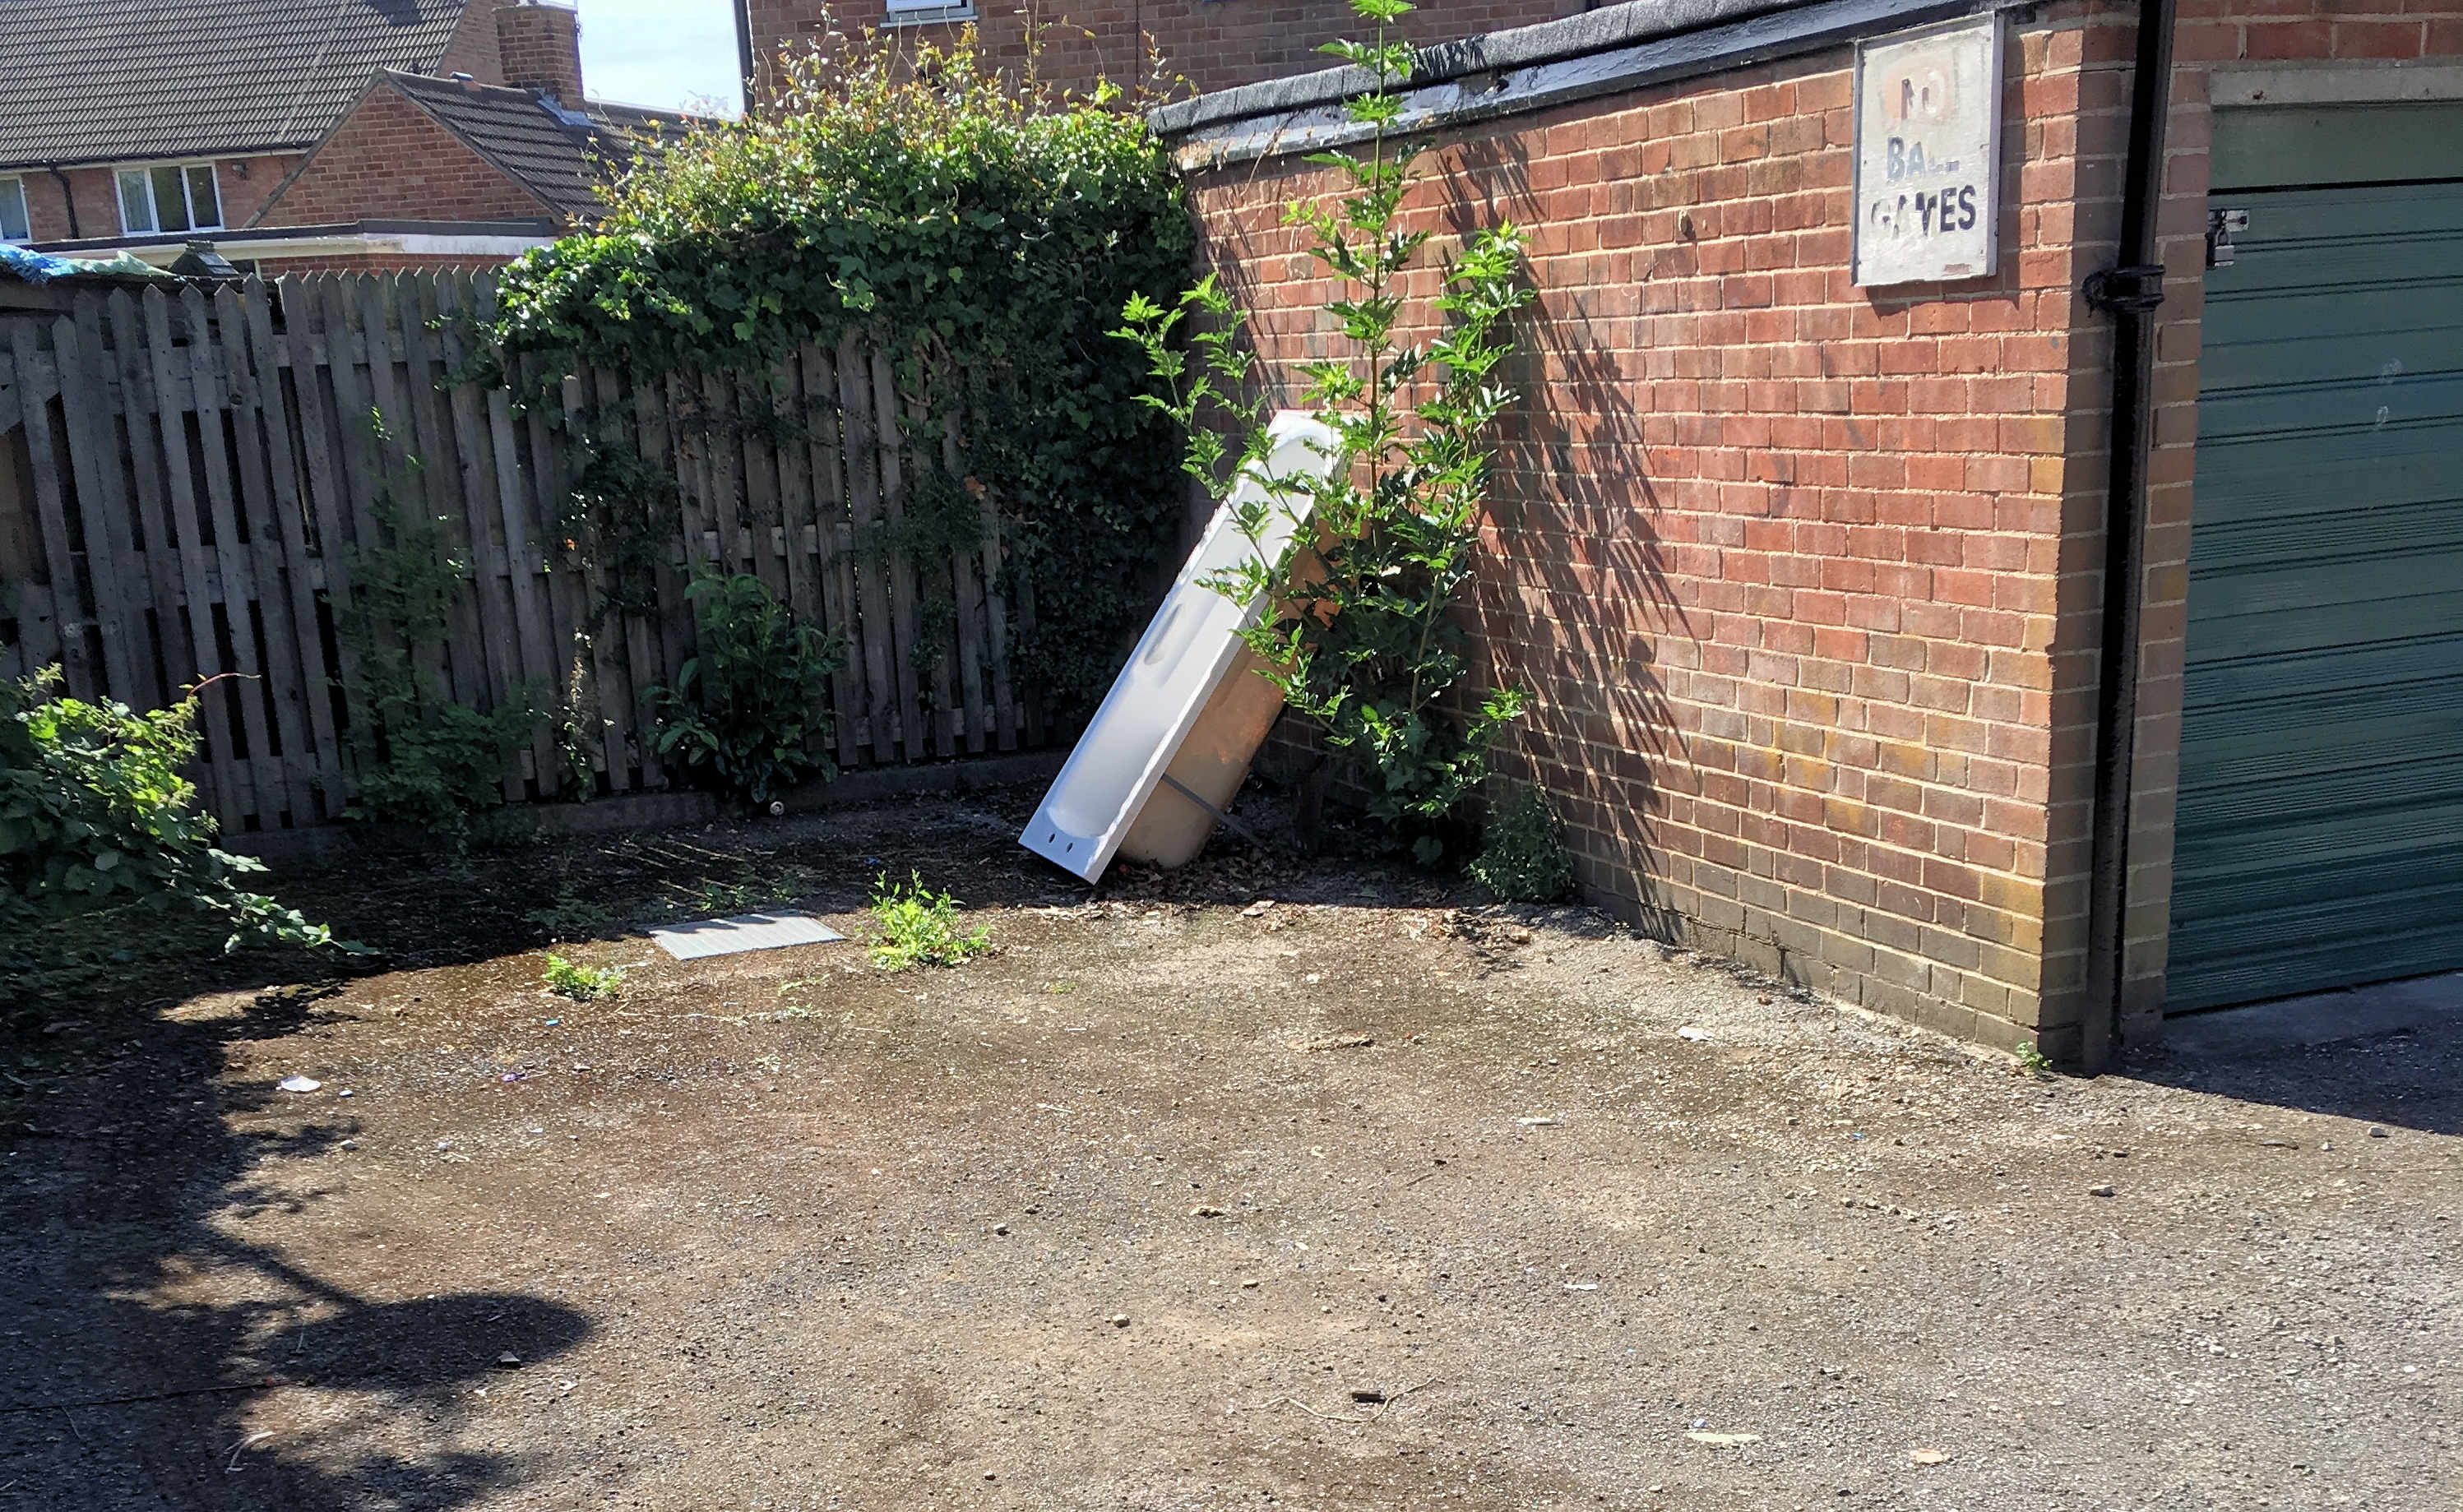 Dumped bath Green Lane garage area